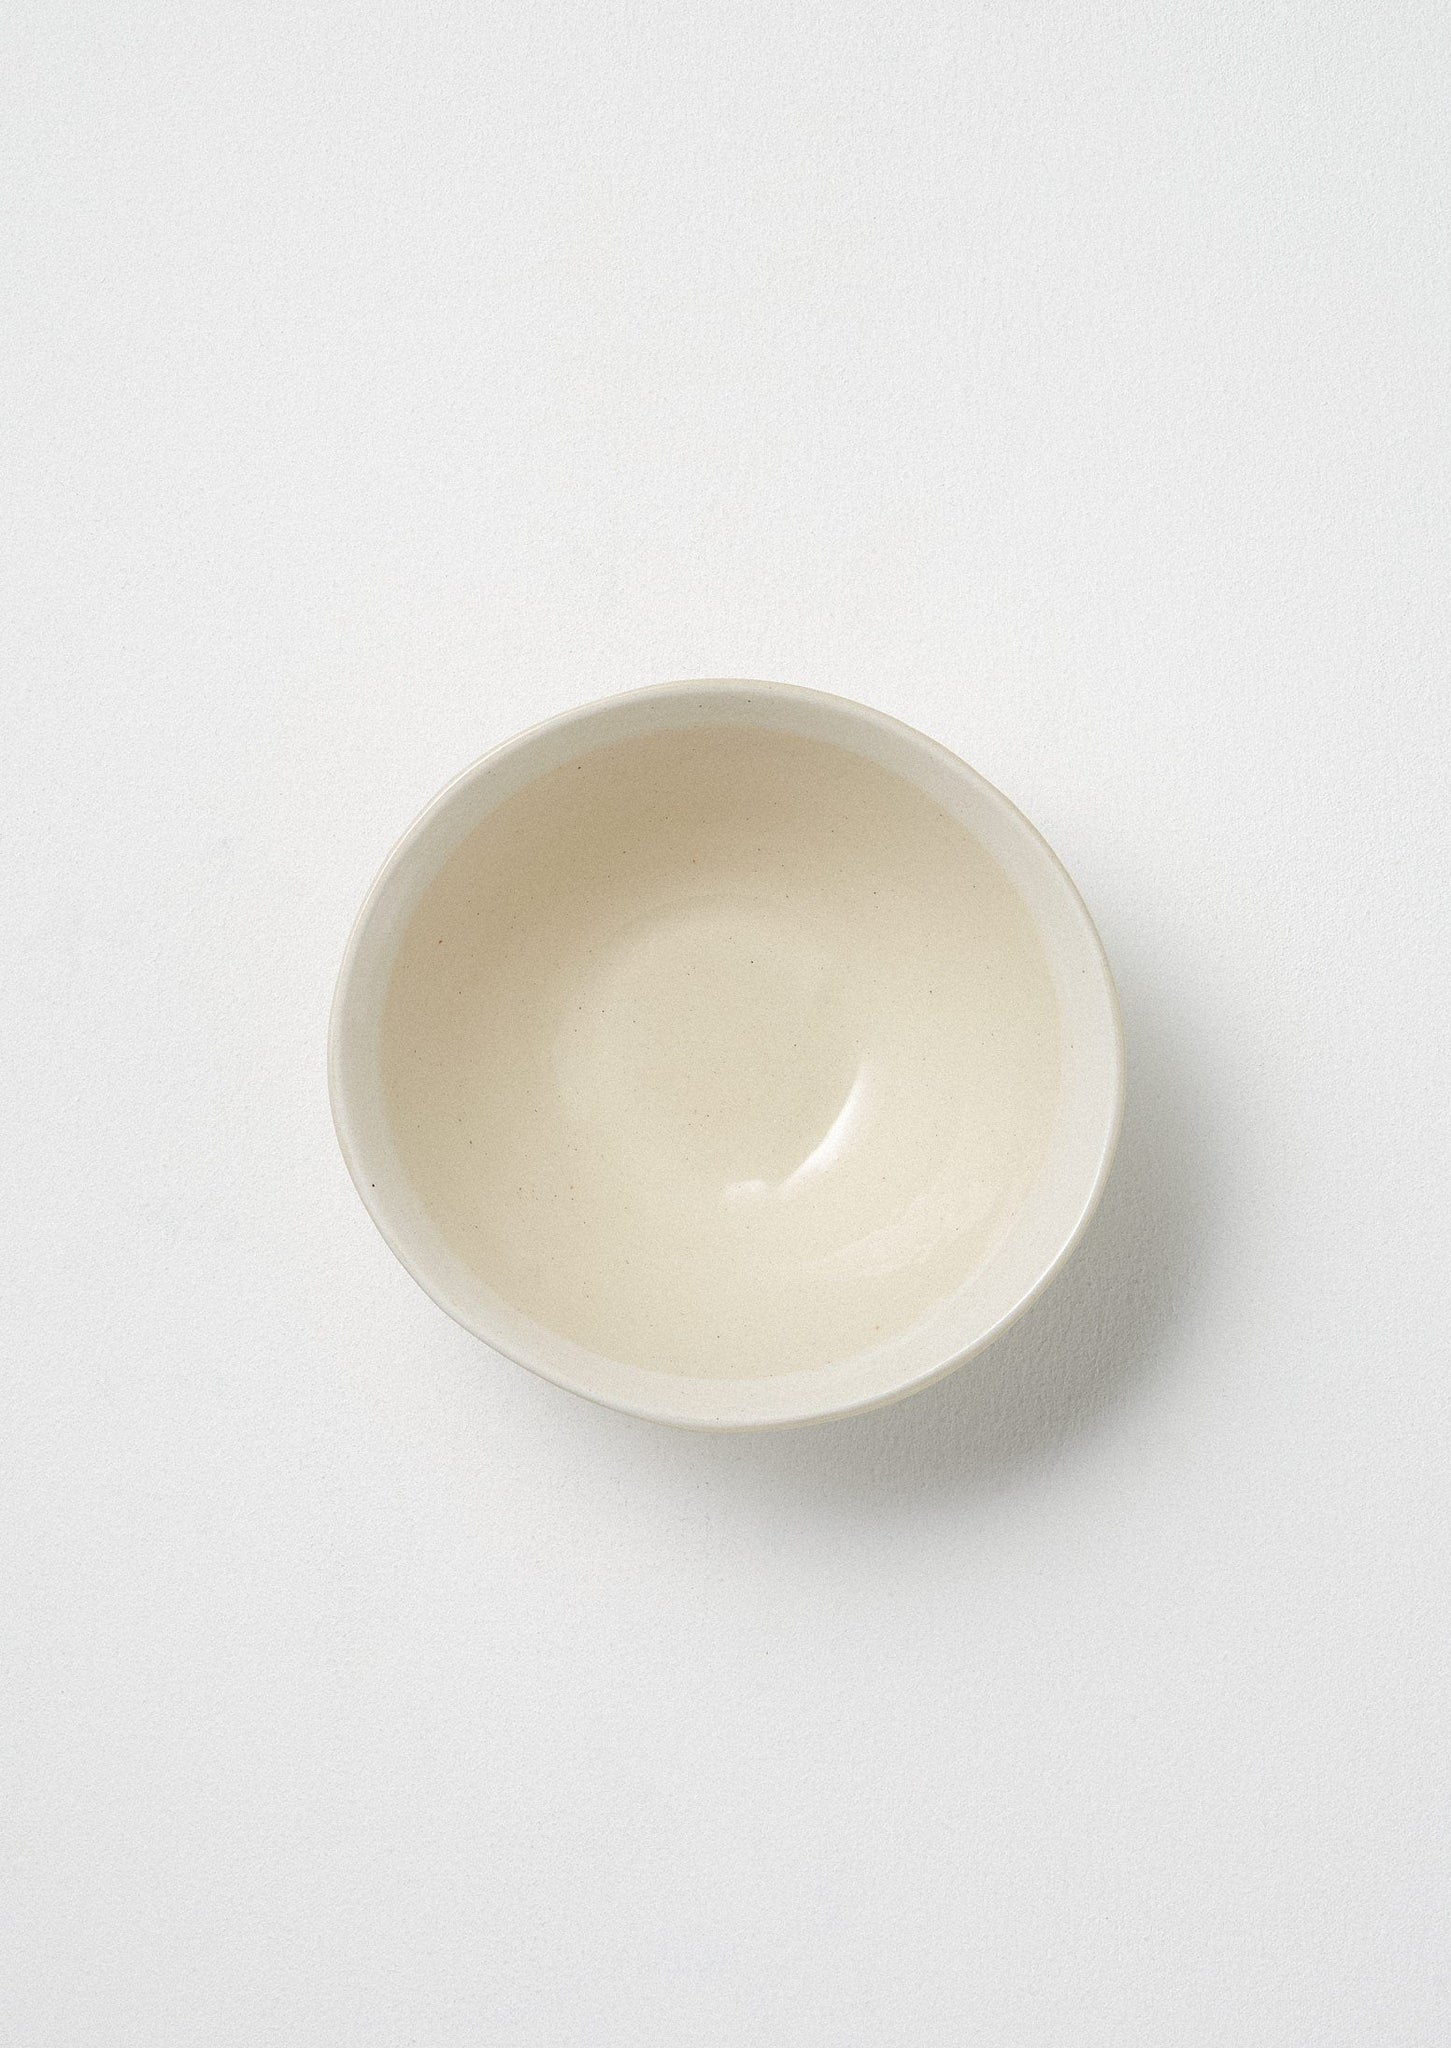 Wonki Ware White Wash Pudding Bowl | Natural/White ?id=16768506134562